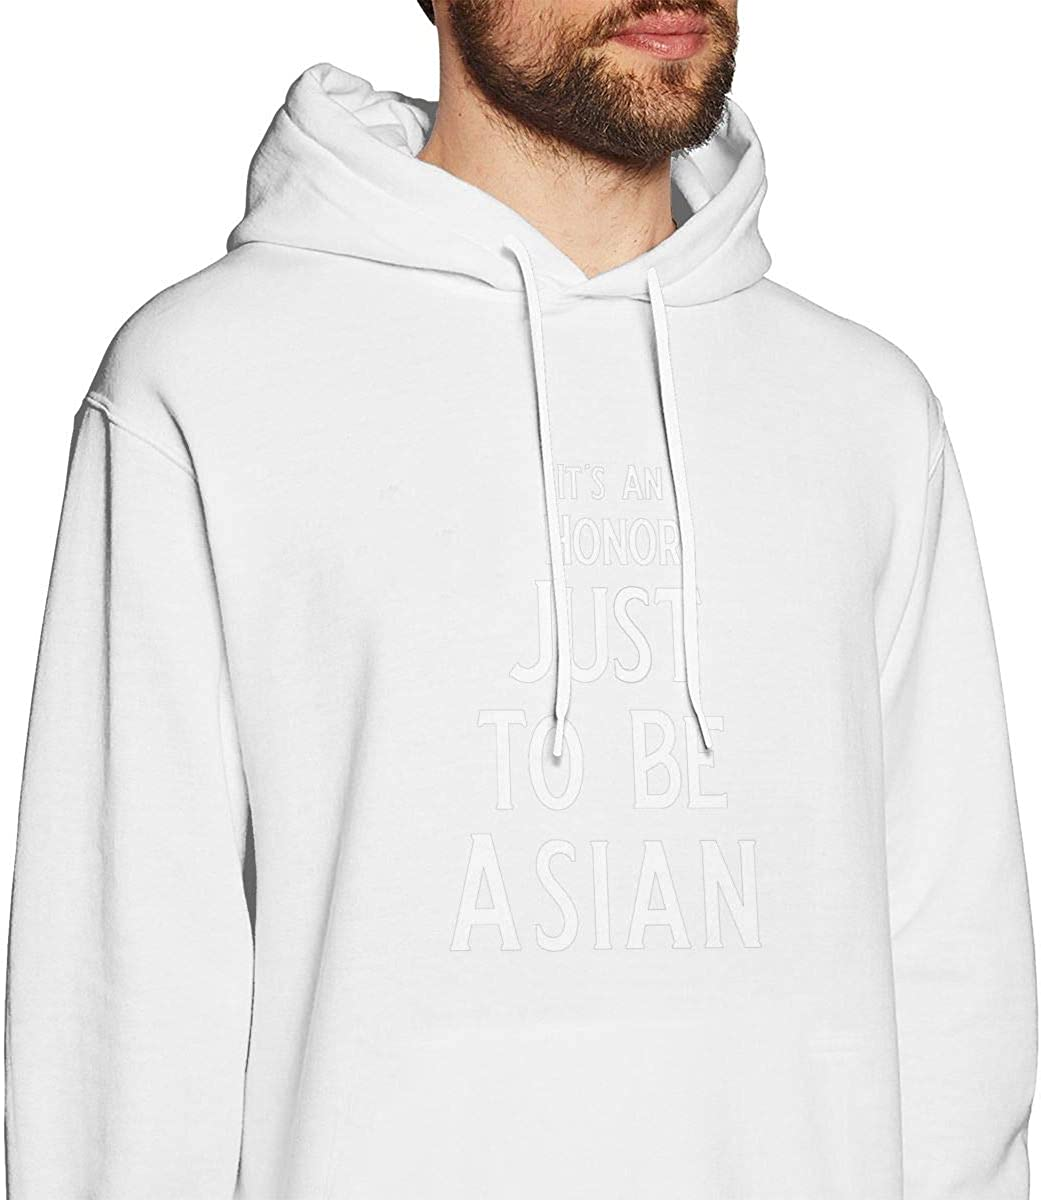 Its an Honor Just to Be Asian Mens Hooded Sweatshirt Theme Printed Fashion Hoodie